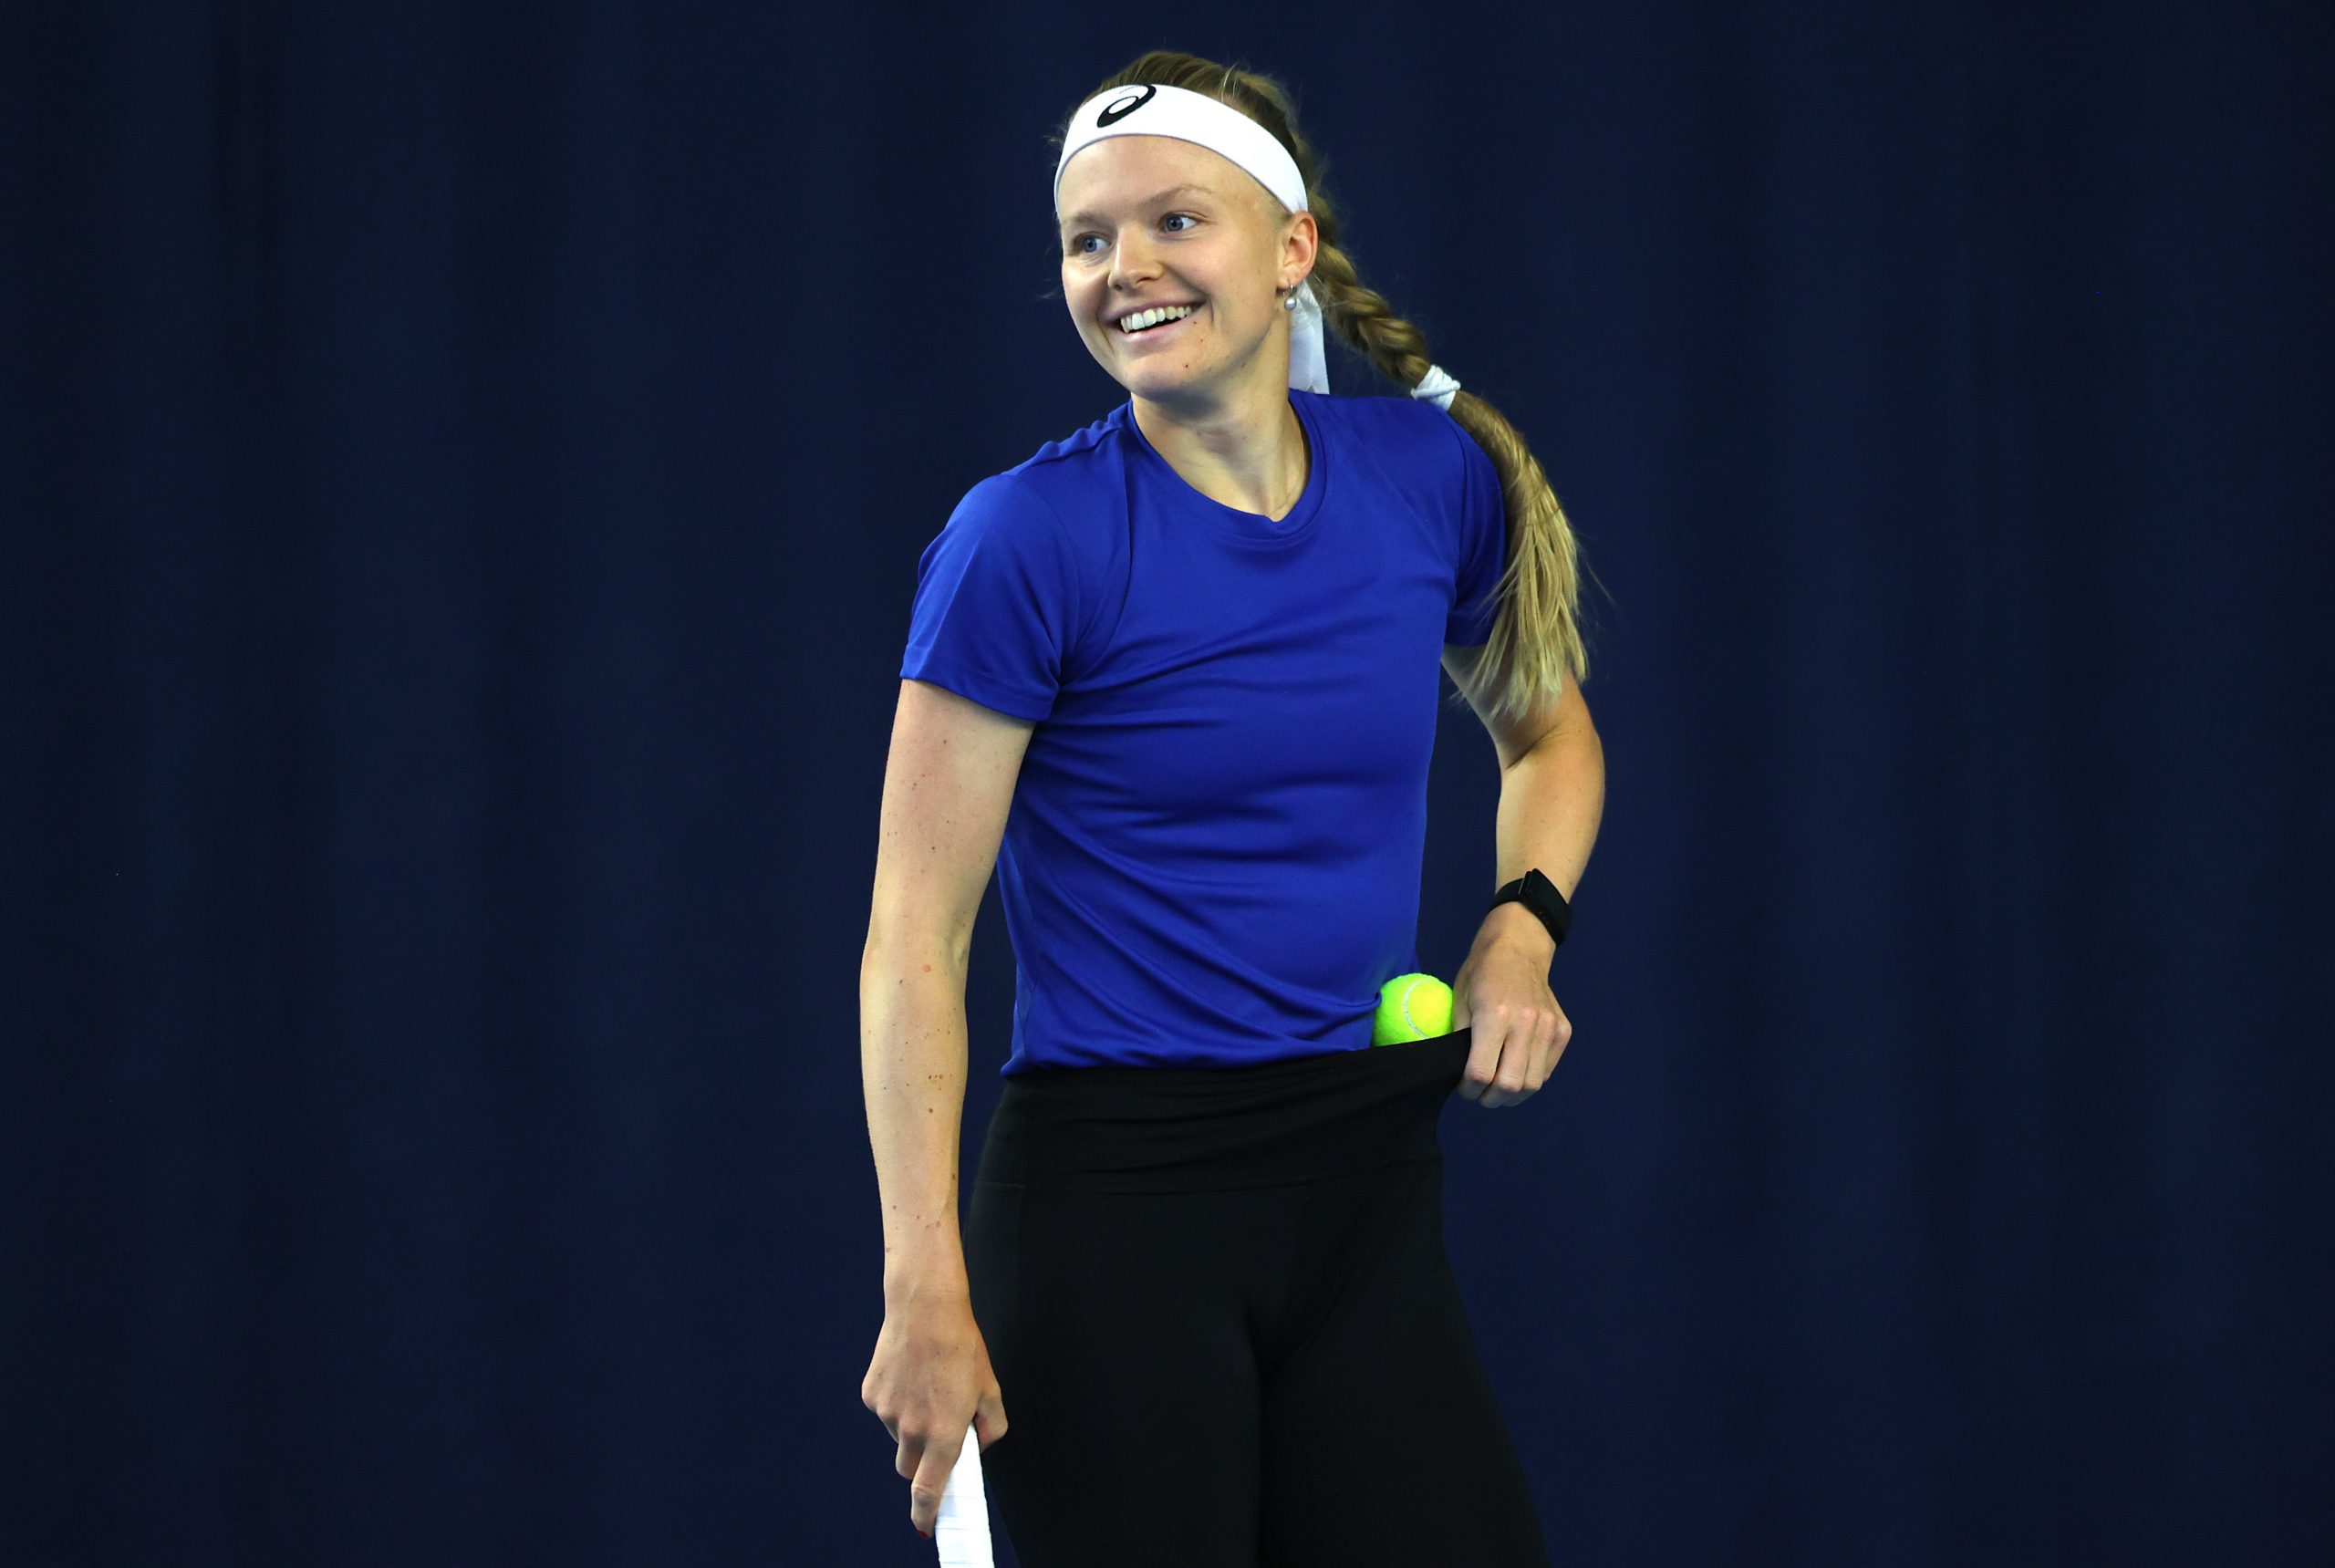 LONDON, ENGLAND - APRIL 15: Harriet Dart of Great Britain reacts during a preview day of the Billie Jean King Cup Play-Offs between Great Britain and Mexico at National Tennis Centre on April 15, 2021 in London, England. (Photo by Naomi Baker/Getty Images for LTA)